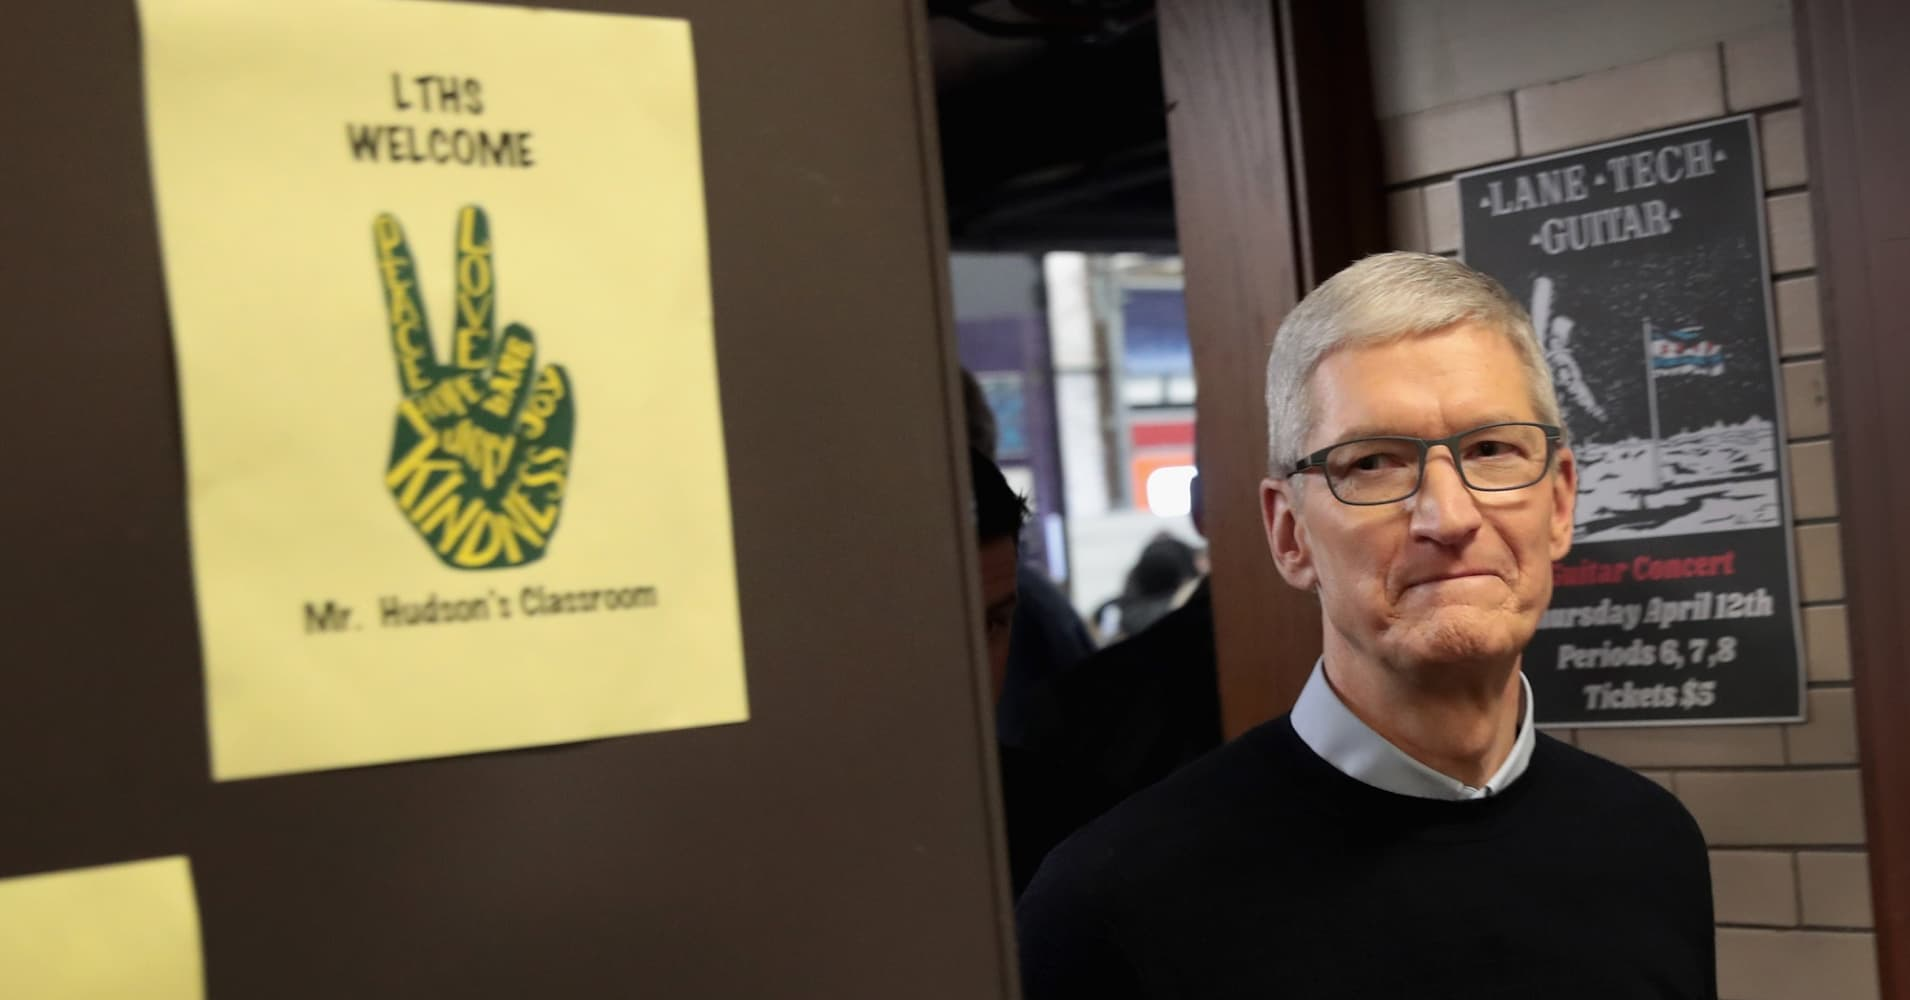 Apple CEO Tim Cook tours labs to view demonstrations of apps during an event at Lane Tech College Prep High School on March 27, 2018 in Chicago, Illinois.